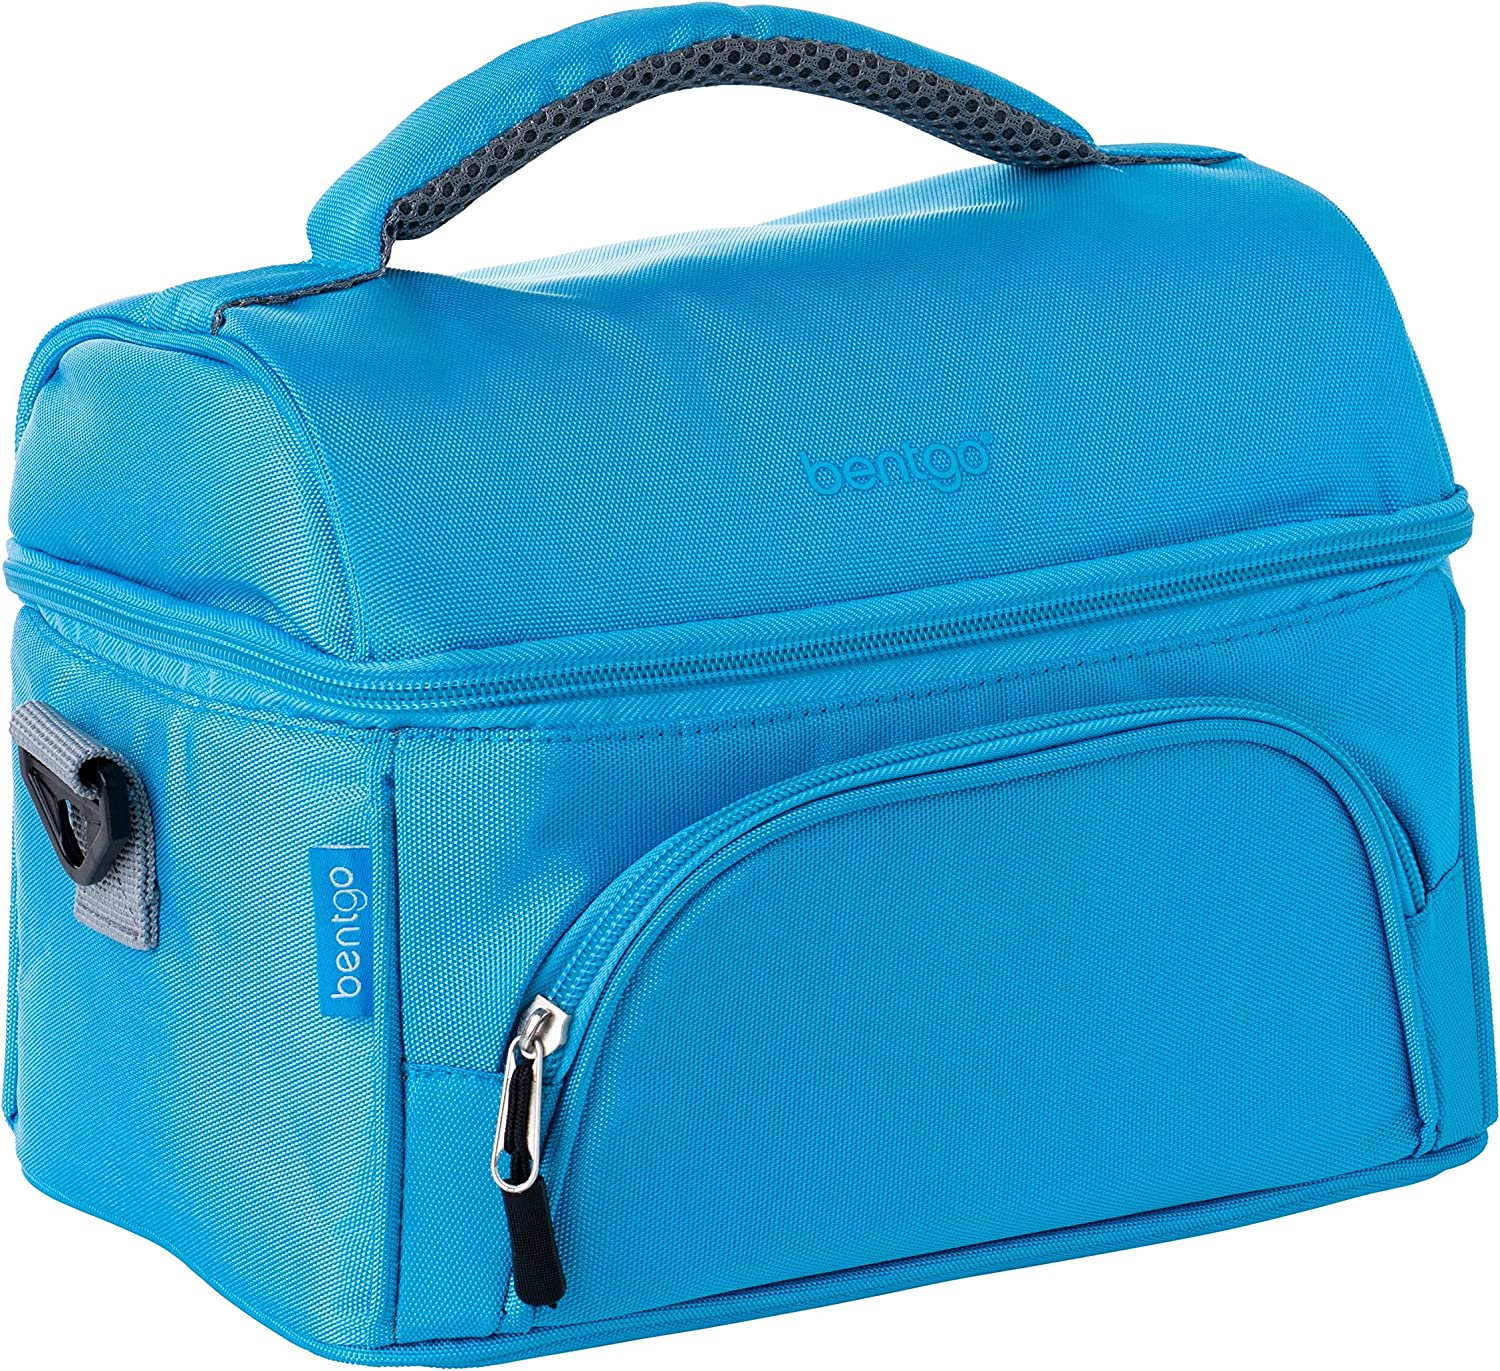 Bentgo Lunch Bag (Blue) - Insulated Lunch Tote for Work and School with Top and Main Compartments, 2-Way Zipper, Adjustable Strap, and Front Pocket - Fits All Bentgo Lunch Boxes and Other Containers